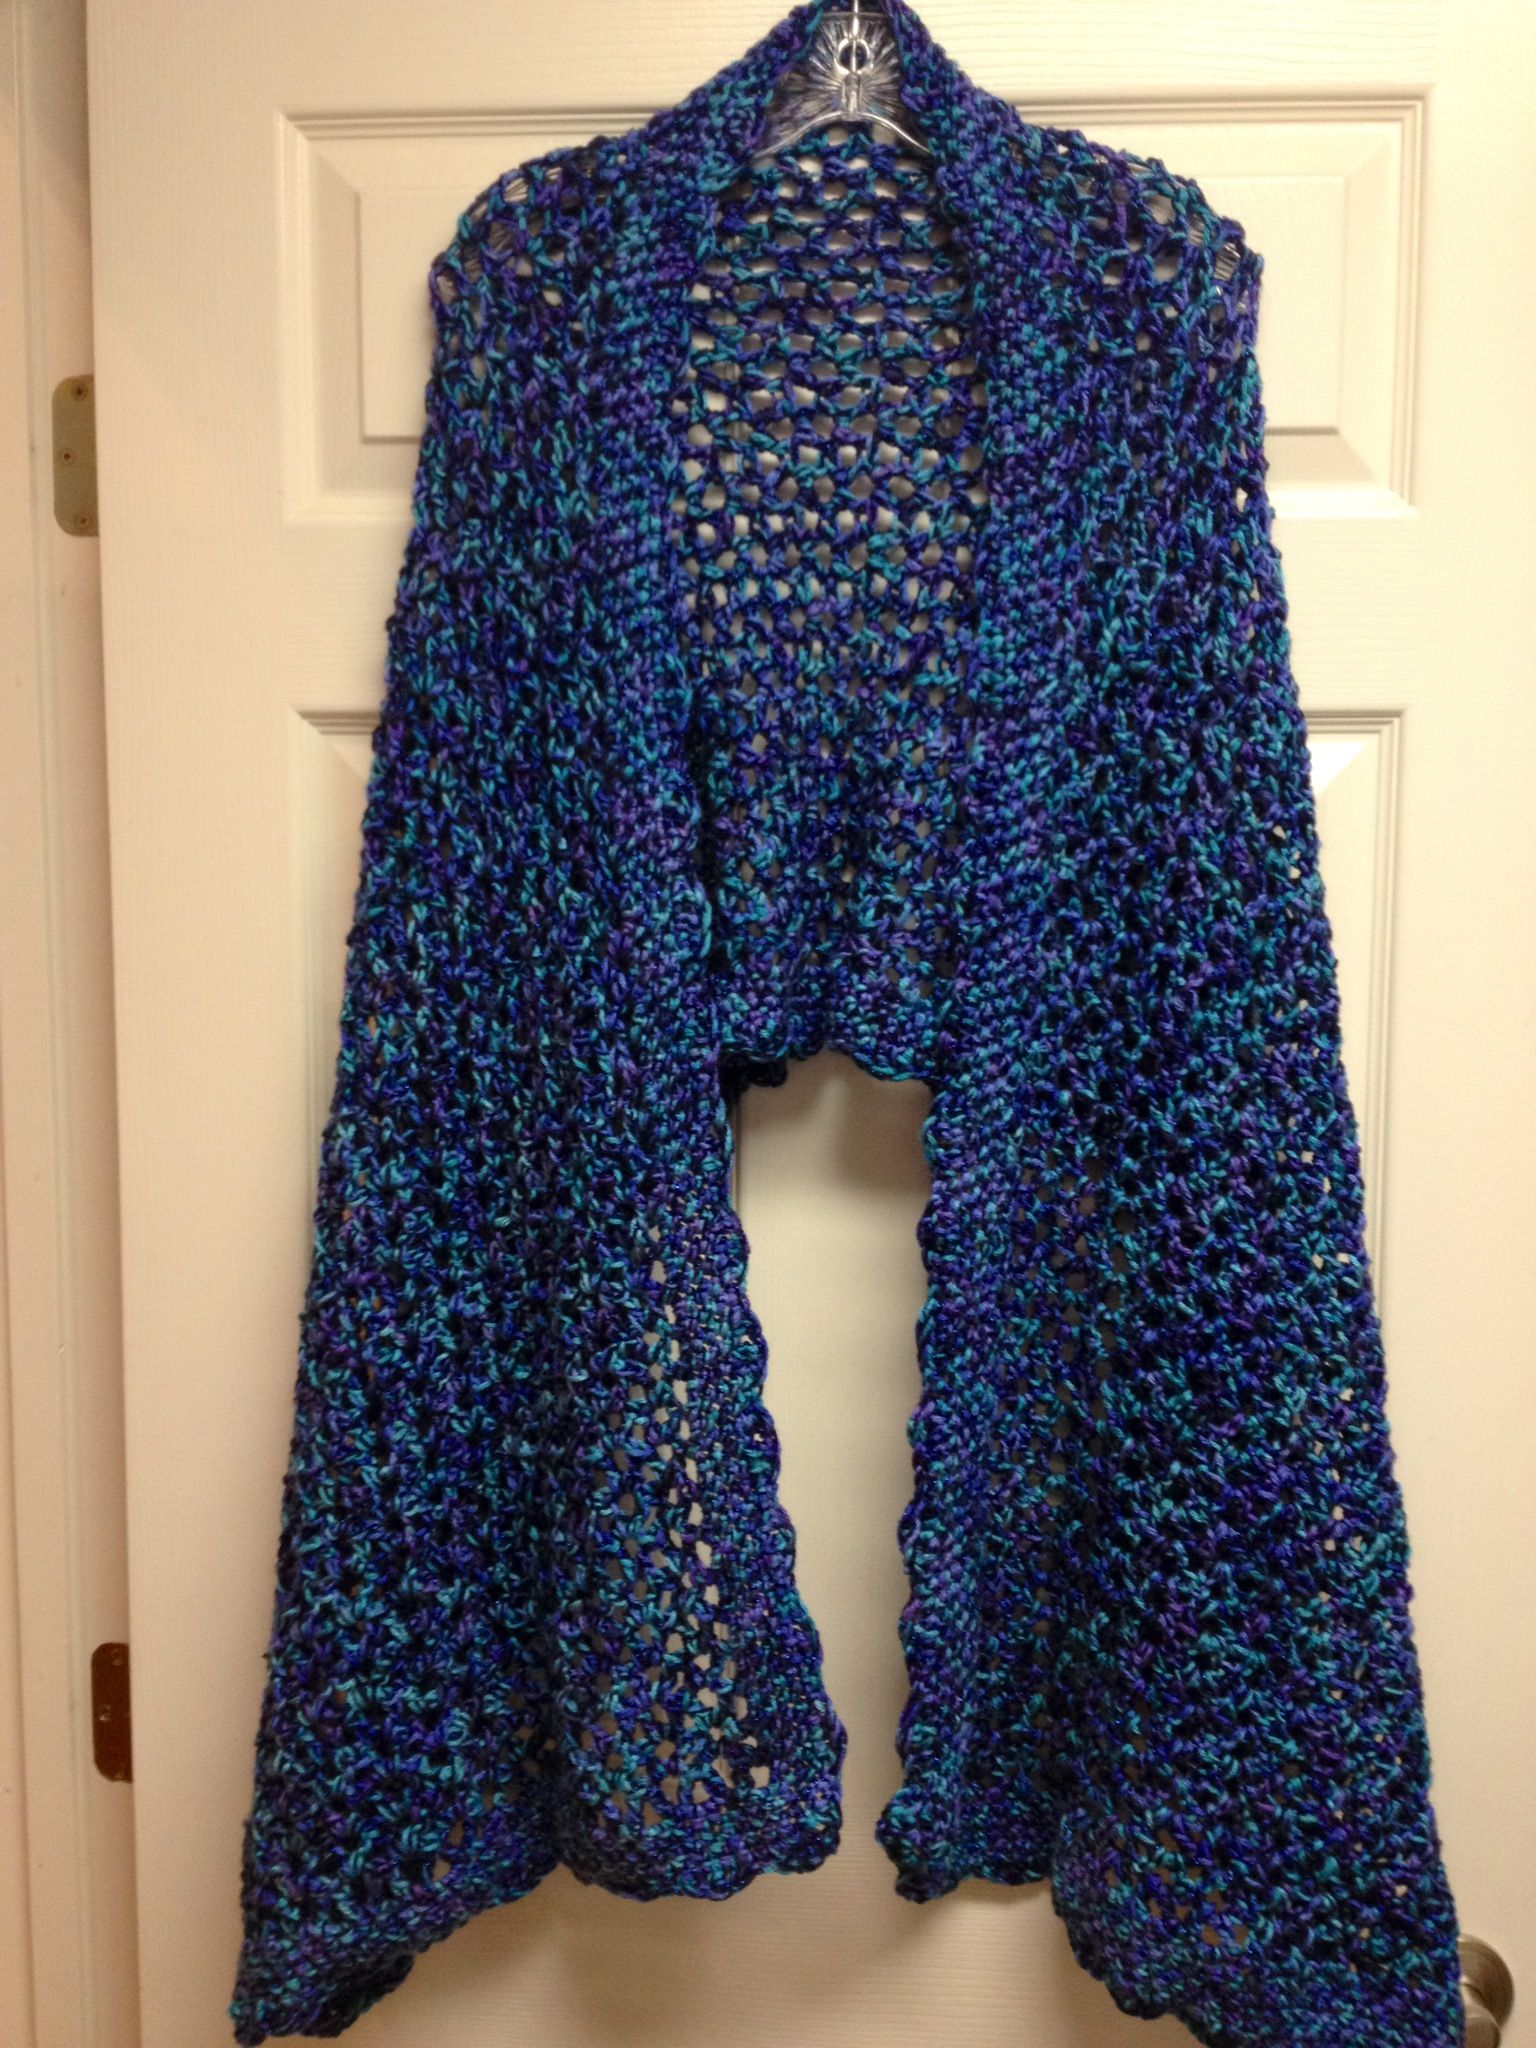 Prayer shawl Crochet Pinterest